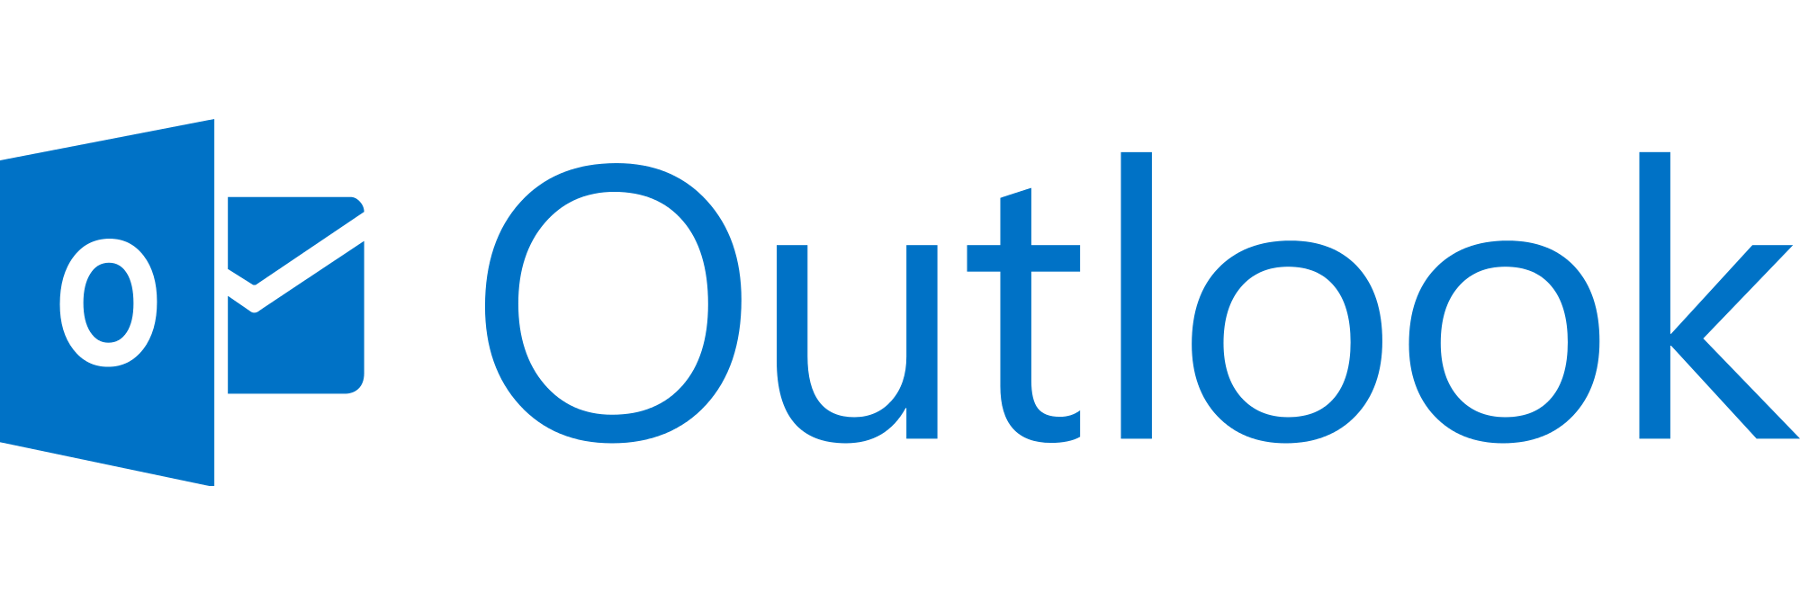 Outlook integration logo